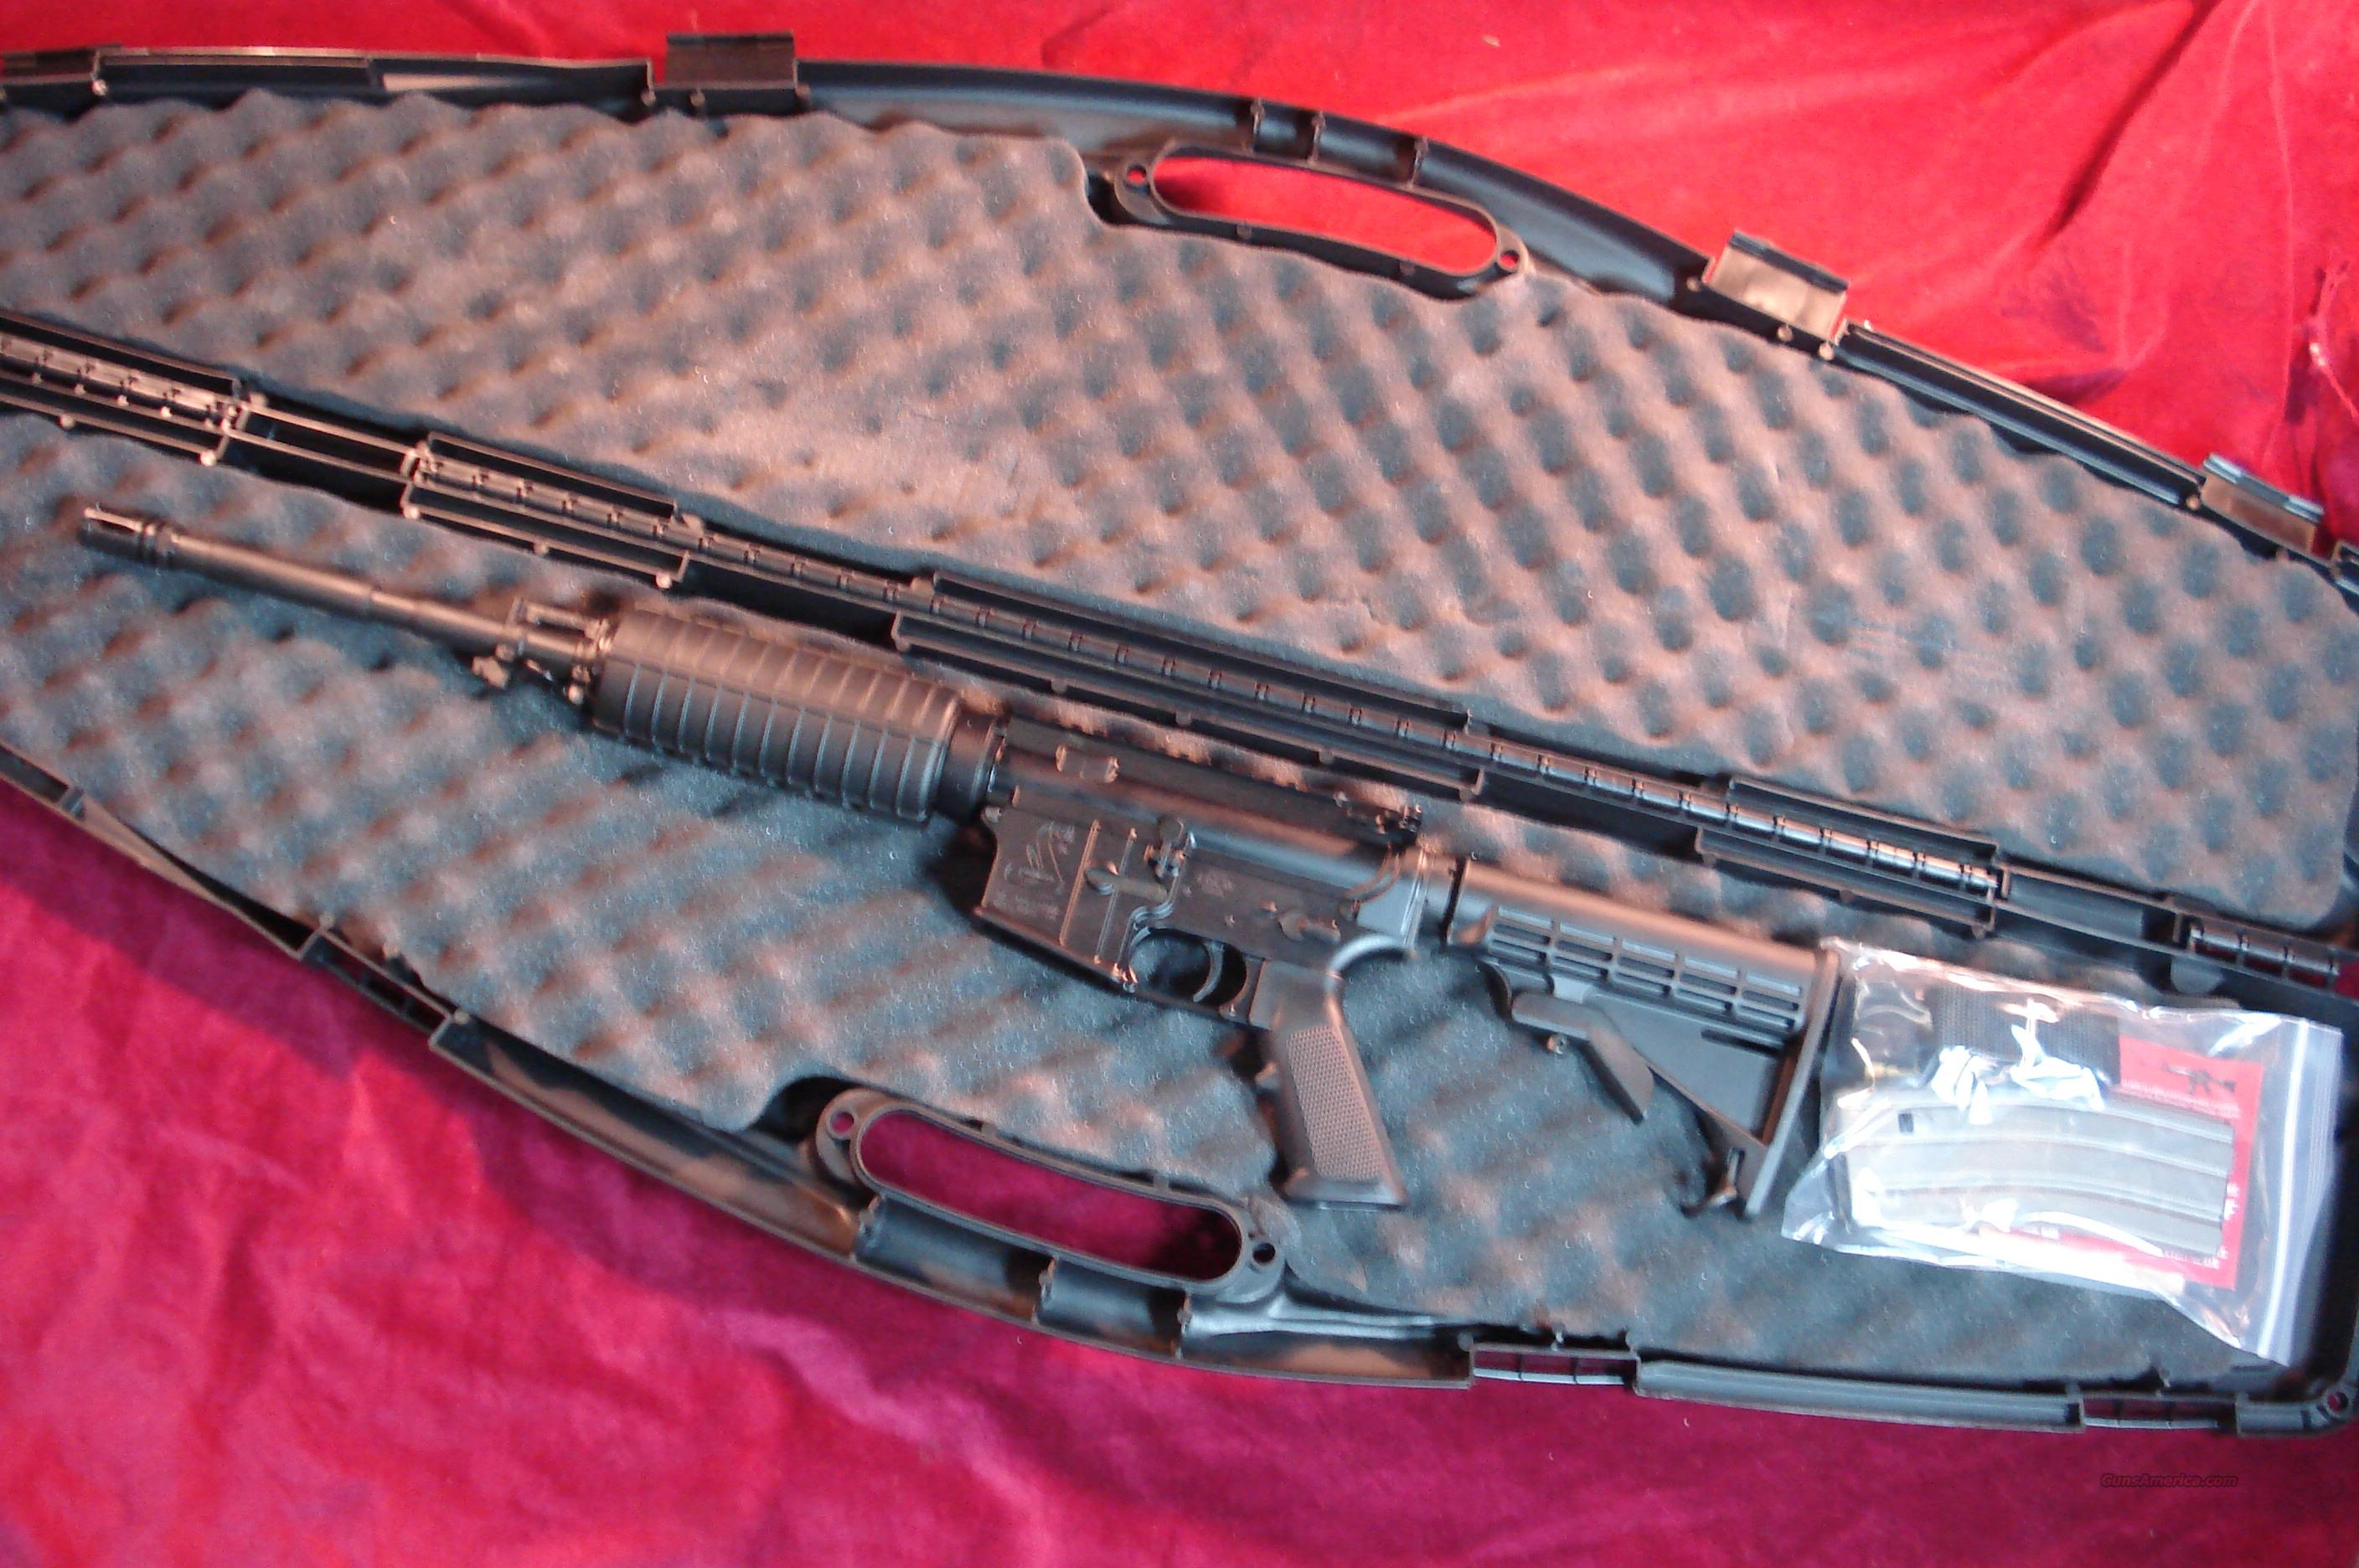 BUSHMASTER M4 O.R.C. ( OPTIC READY CARBINE) NEW   Guns > Rifles > Bushmaster Rifles > Complete Rifles